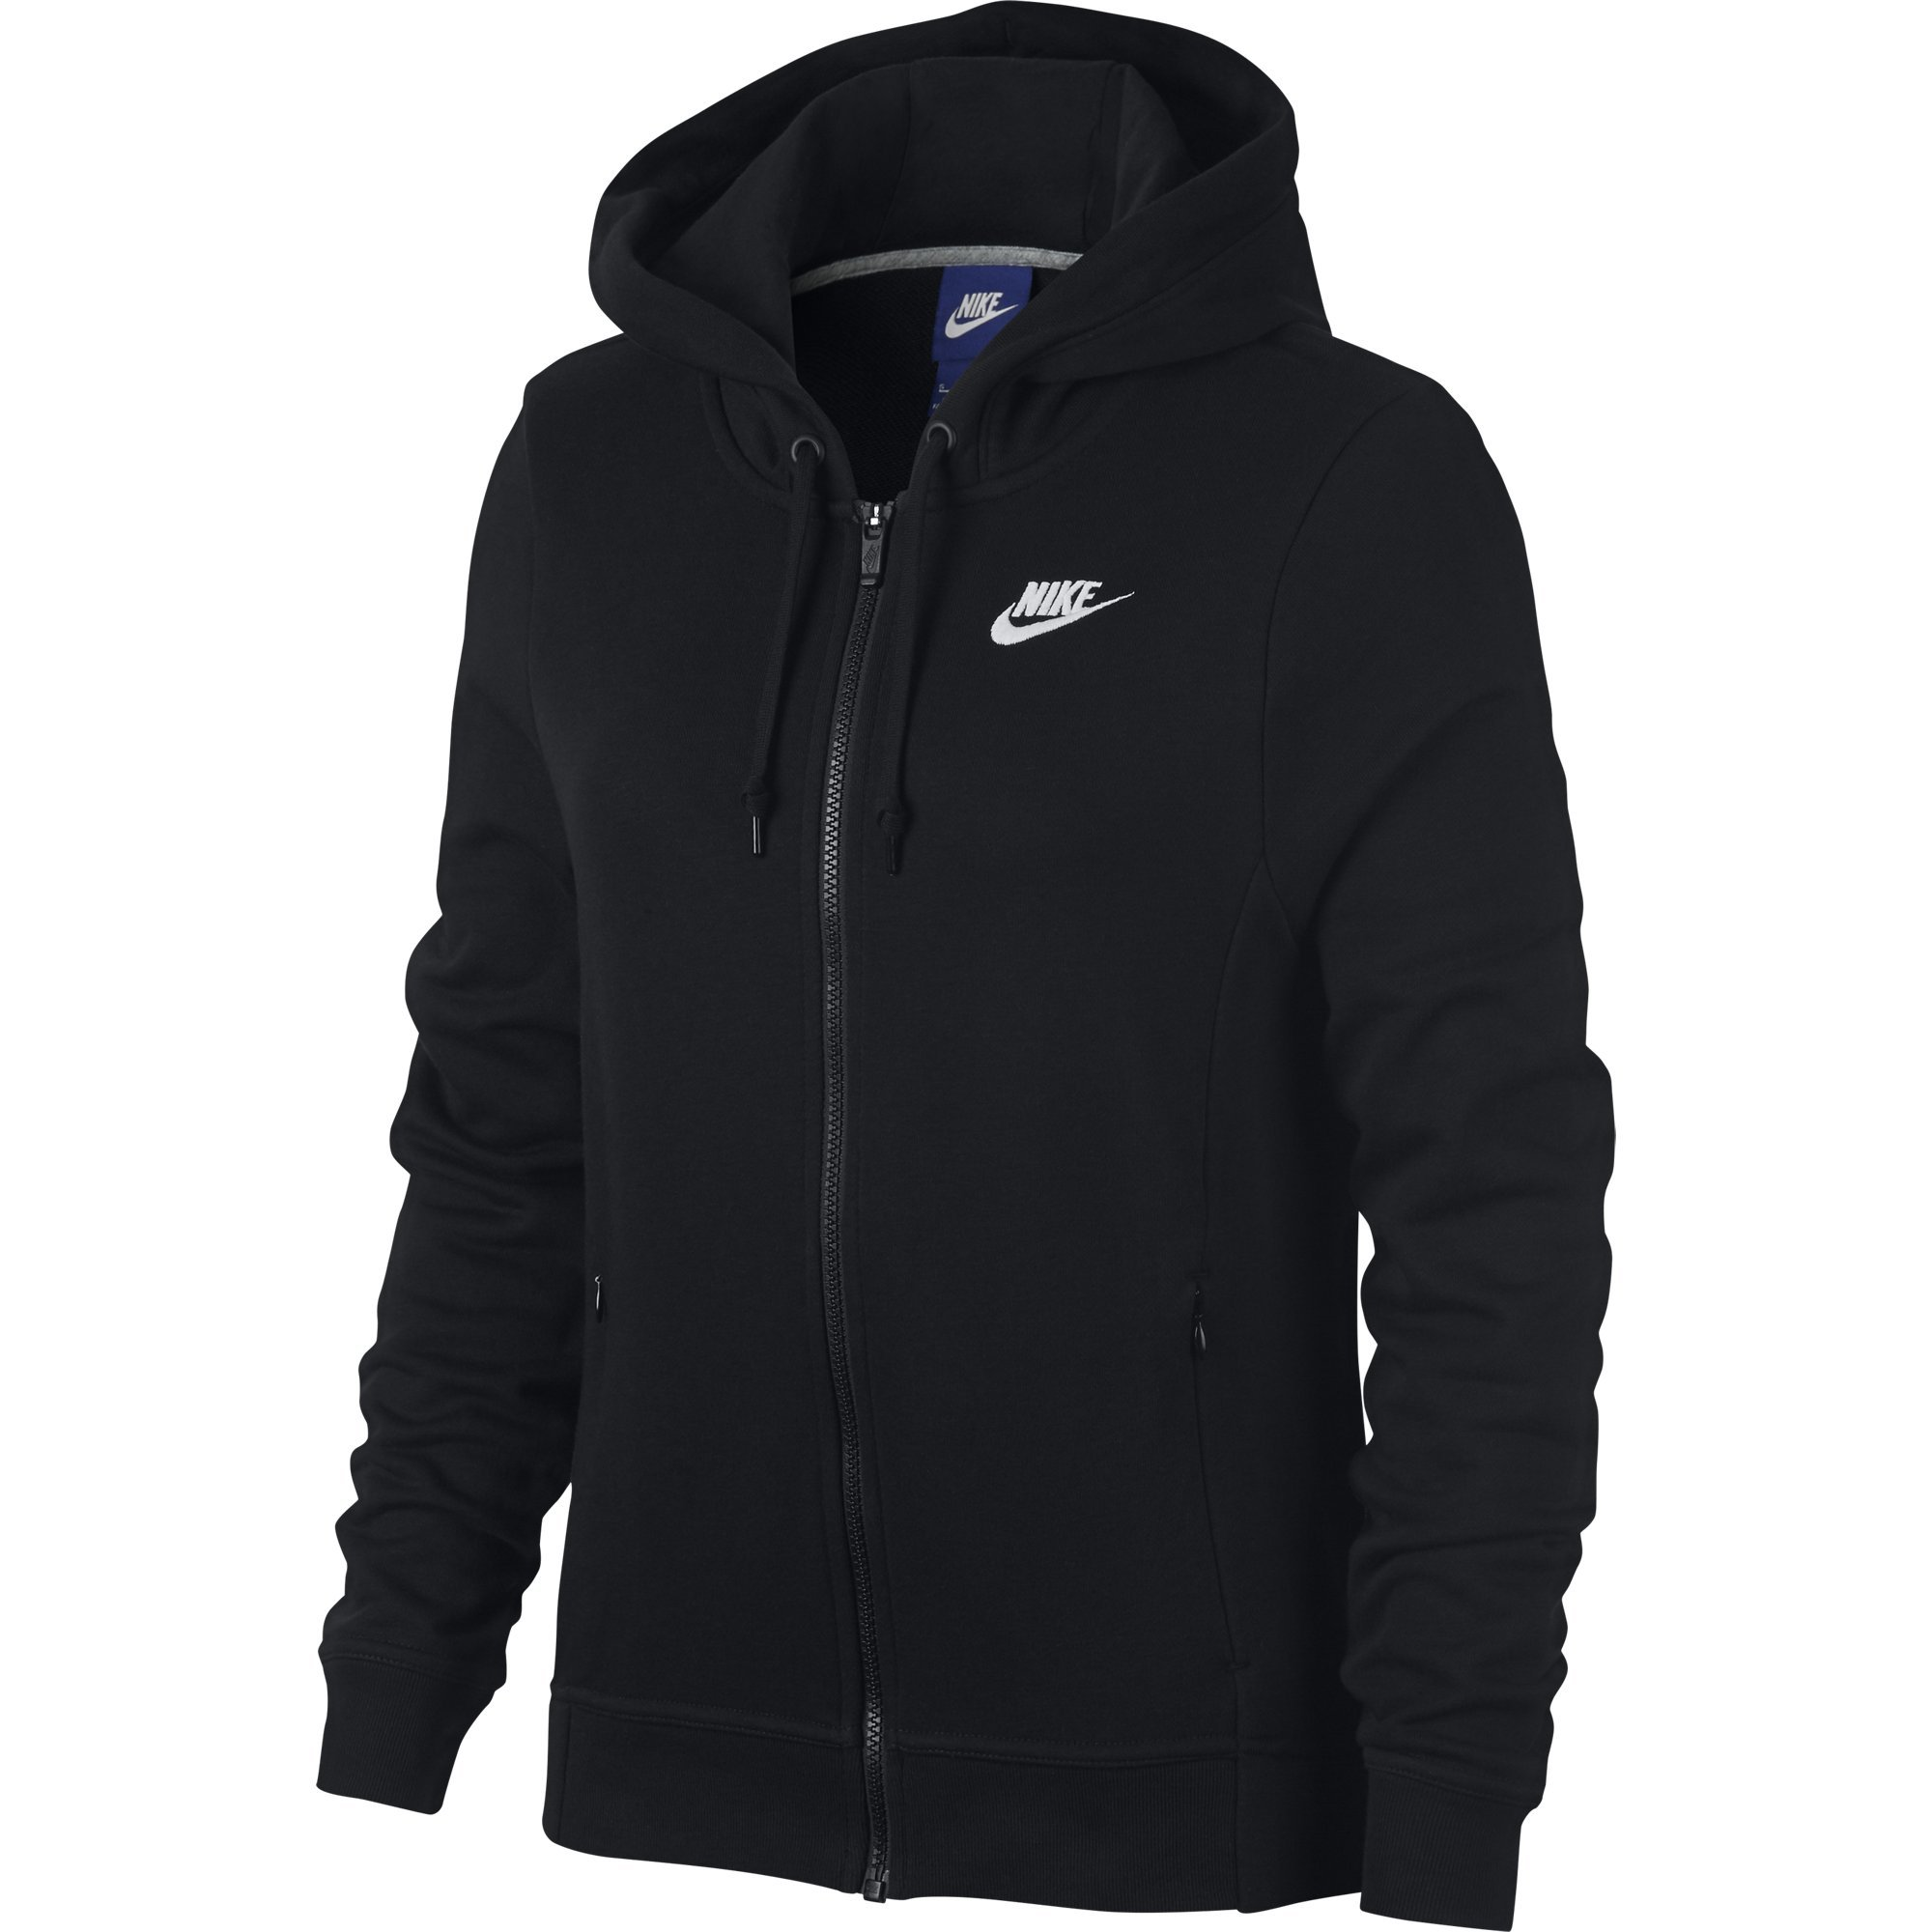 NIKE Sportswear Women's Full Zip Hoodie, Black/Black/Black/White, X-Small by Nike